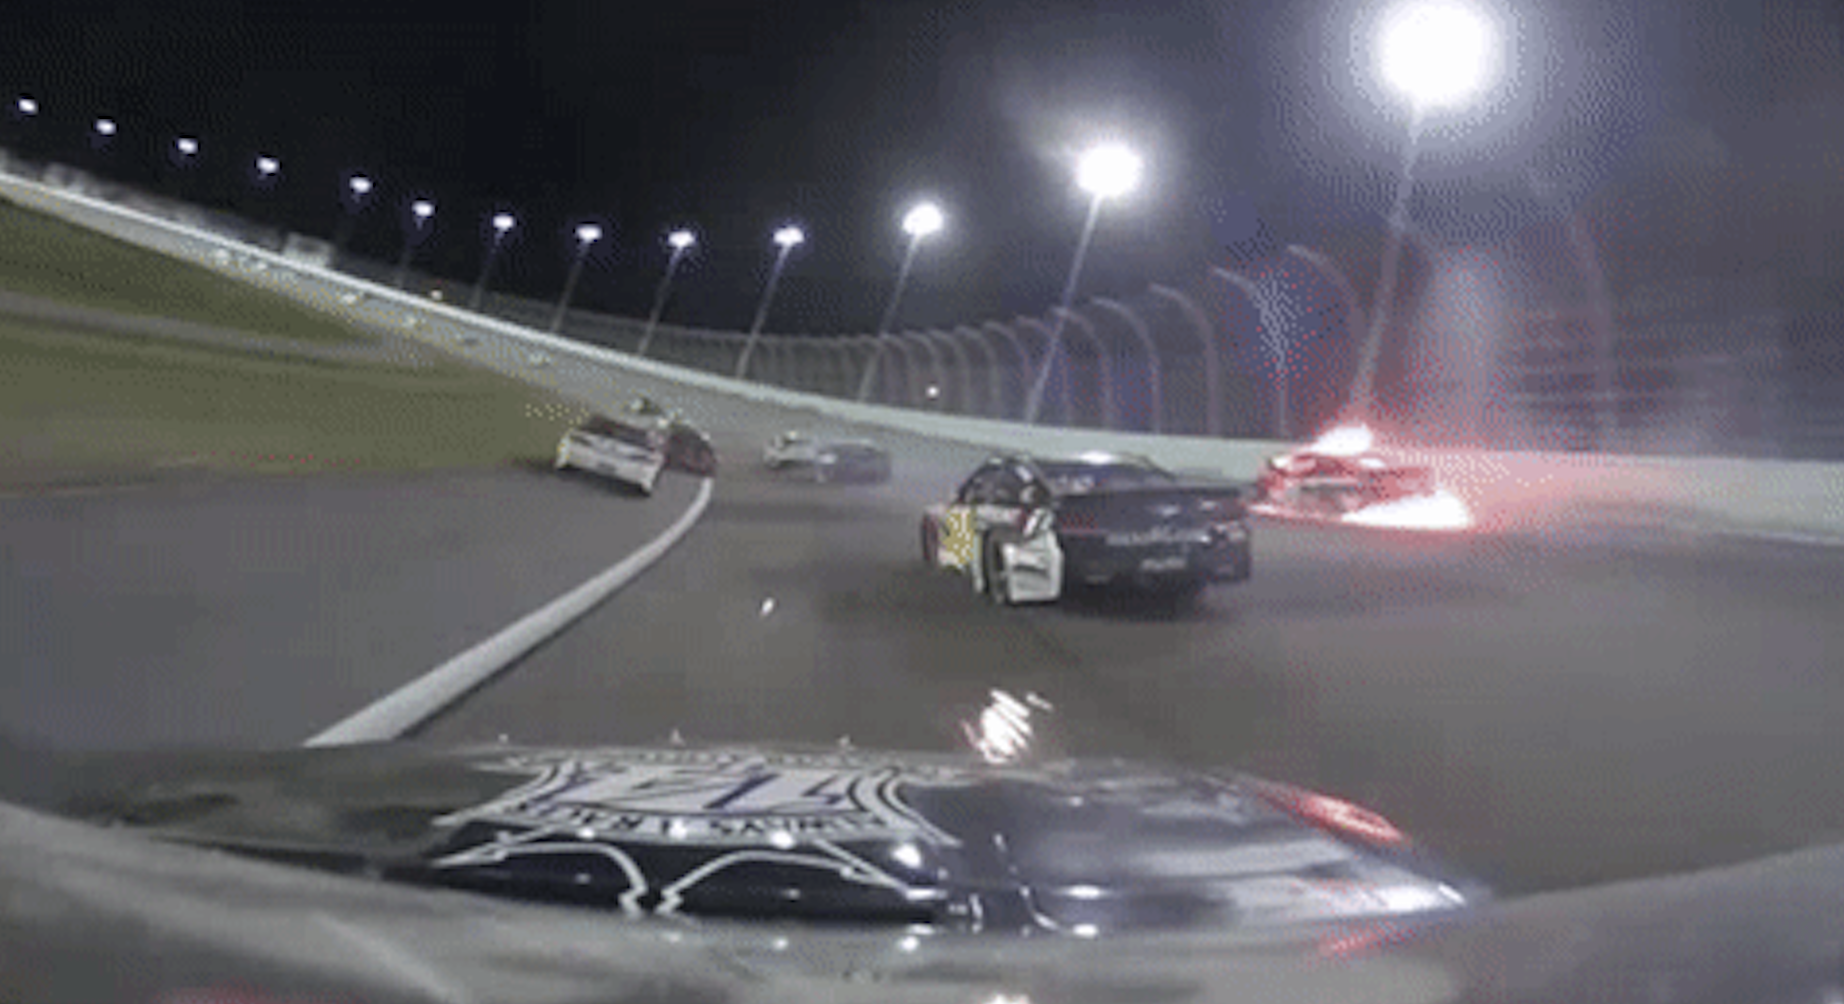 NASCAR produced a live feed of the on-board cameras from Tony Stewart's car during the final race of the NASCAR Sprint Cup season earlier this month that aired on Facebook Live and NASCAR's digital platform NASCAR Drive.